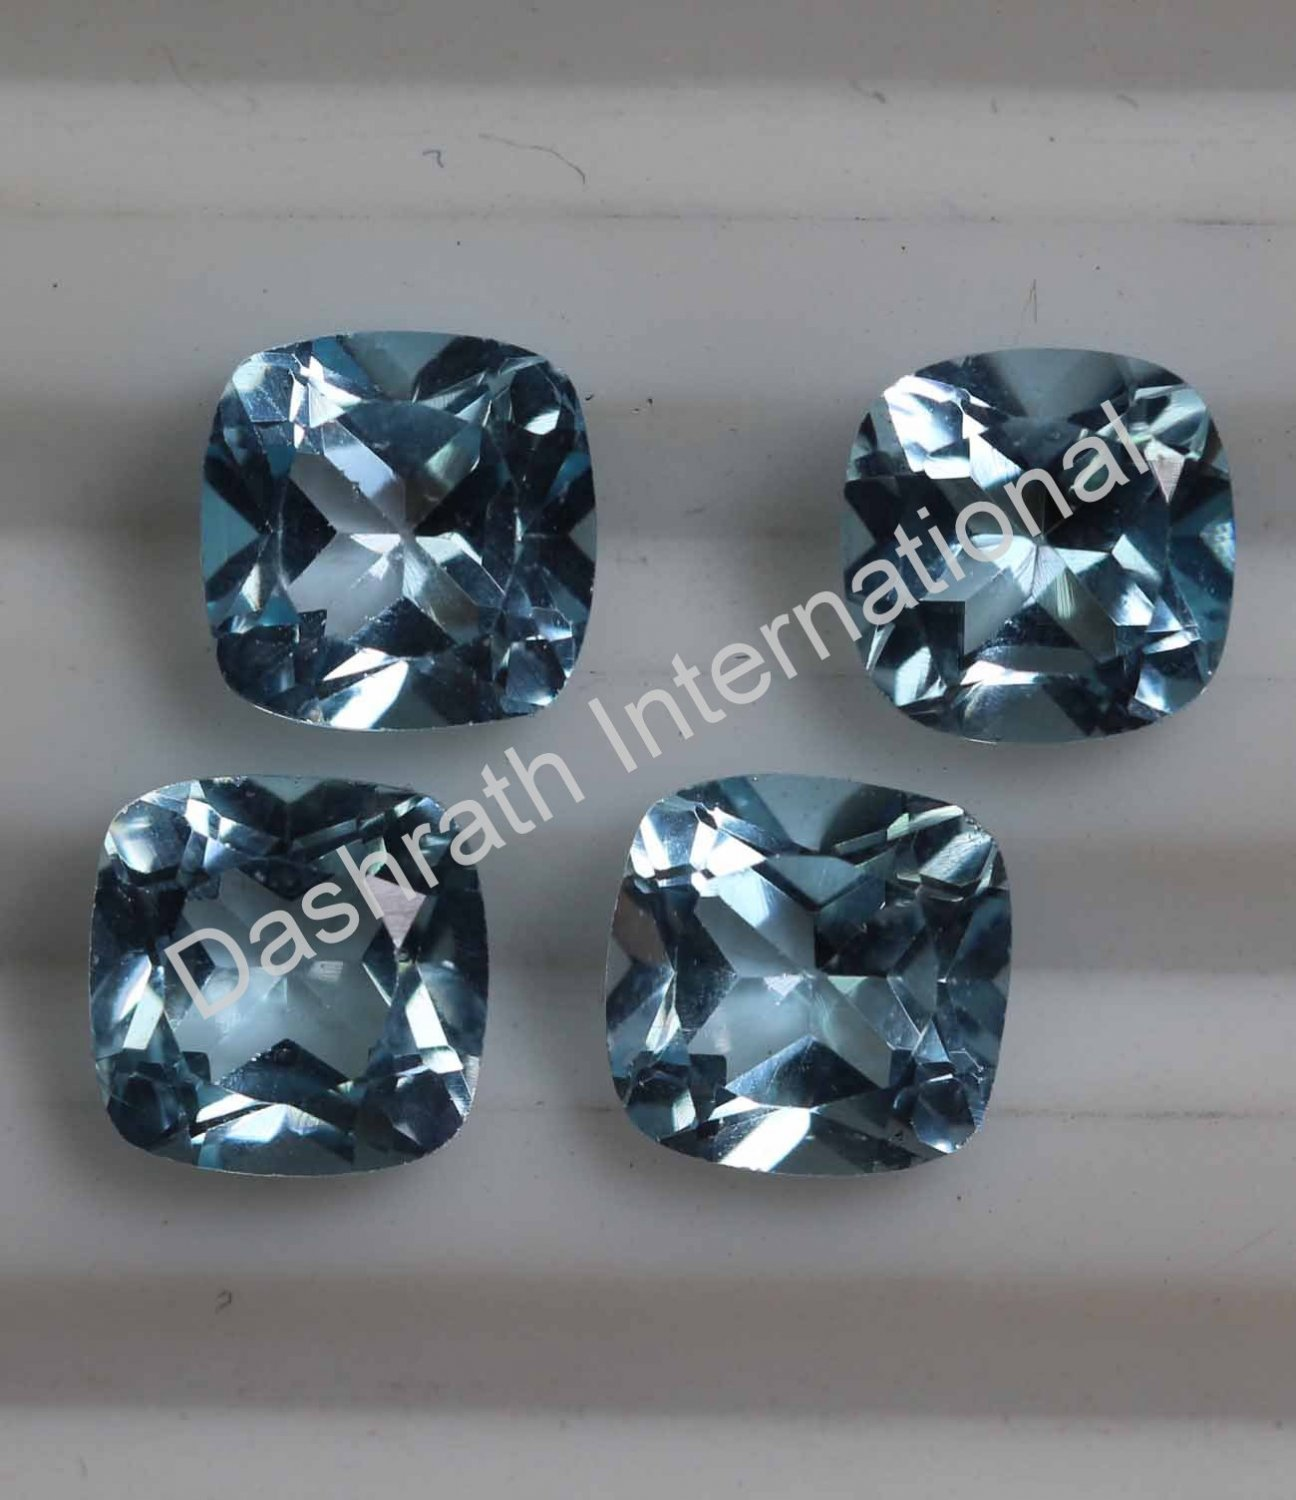 5mm Natural Sky Blue Topaz Faceted Cut Cushion 50 Pieces LotTop Quality Loose Gemstone